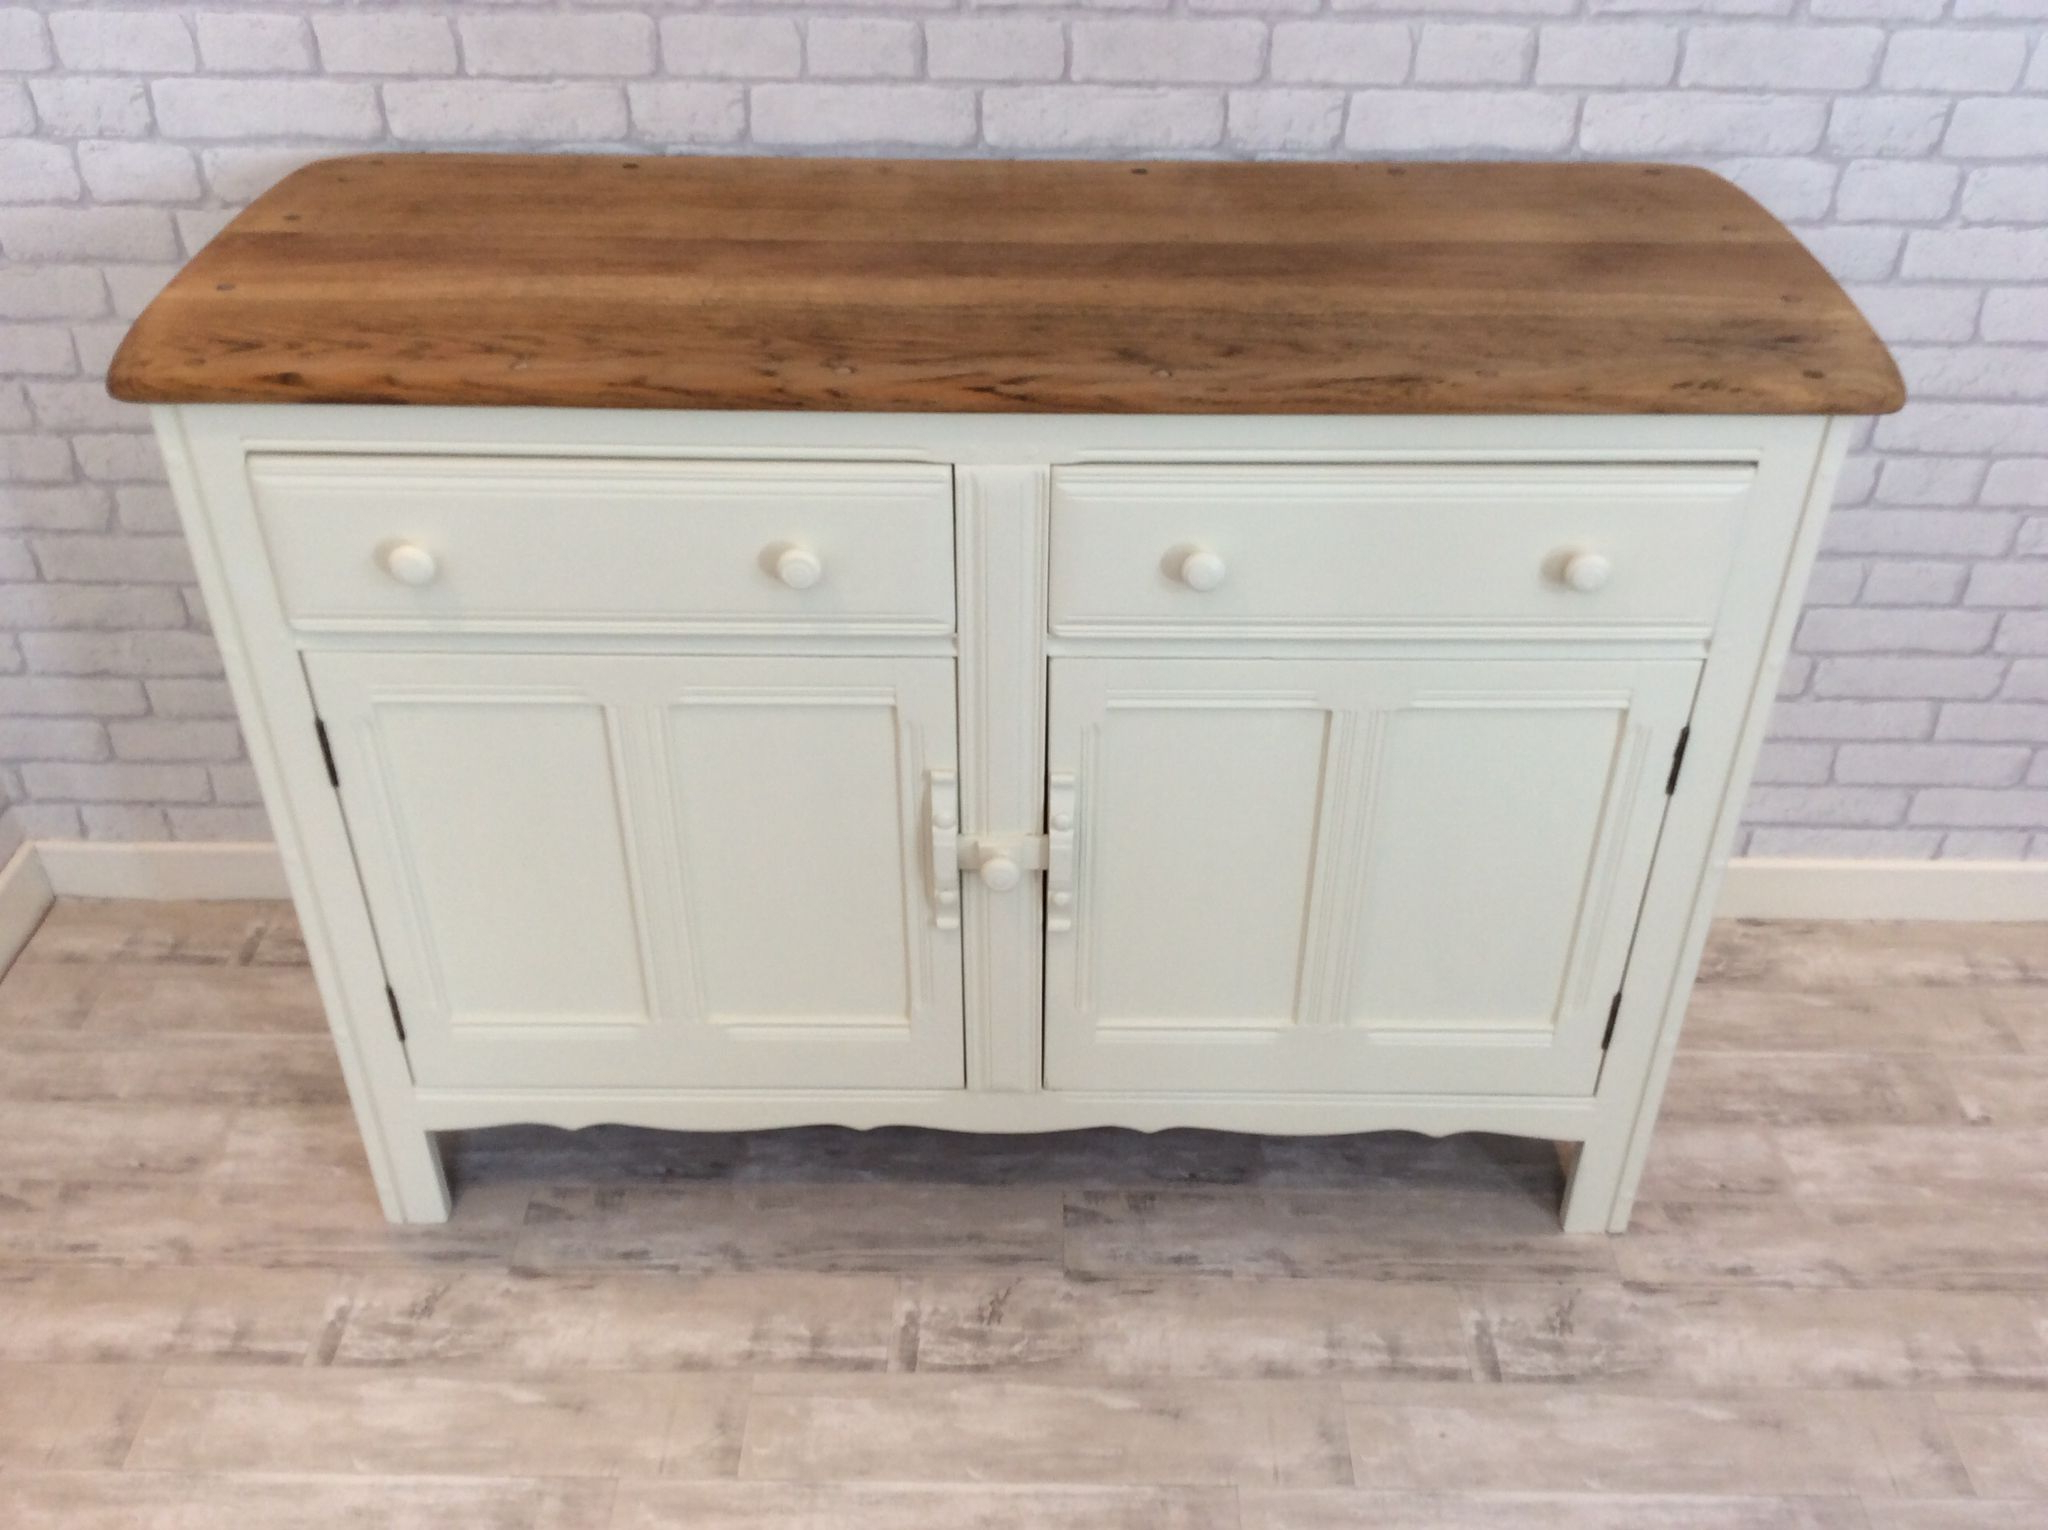 Fashionable Poynter 3 Piece Drop Leaf Dining Sets Regarding Original Ercol Sideboard, Stripped And Painted – Looking Good! (View 17 of 25)